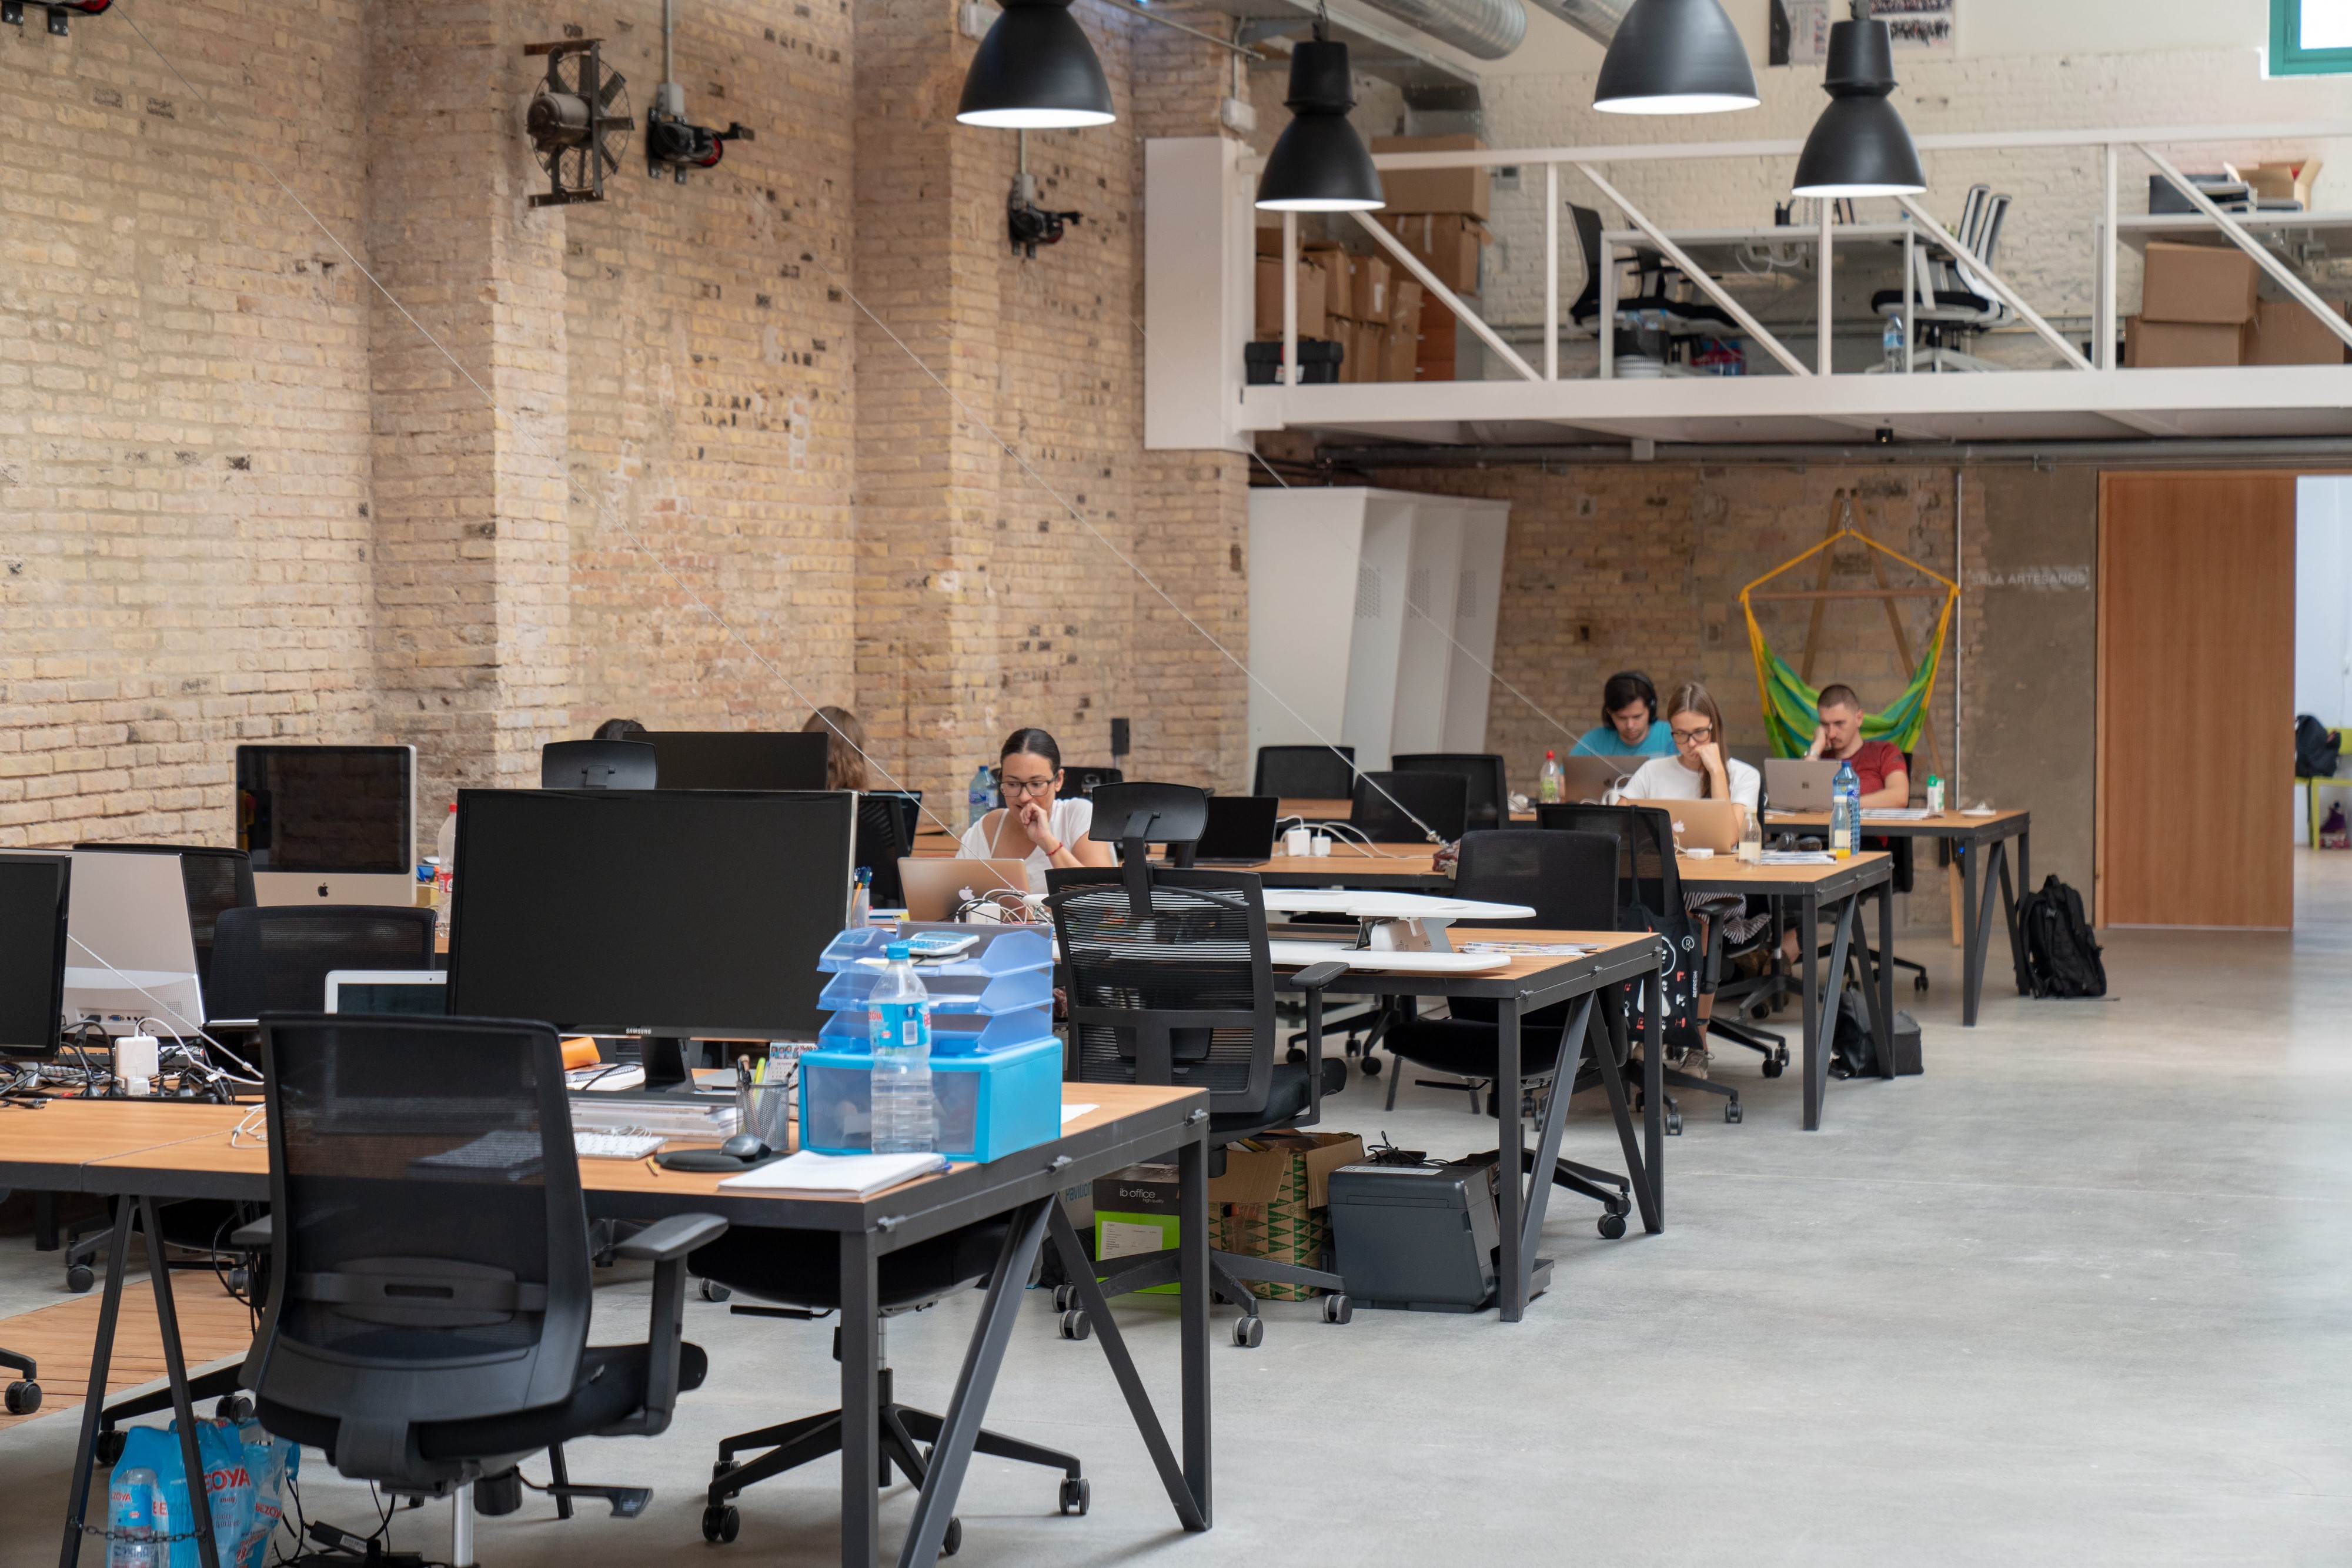 Wayco coworking space in Valencia.